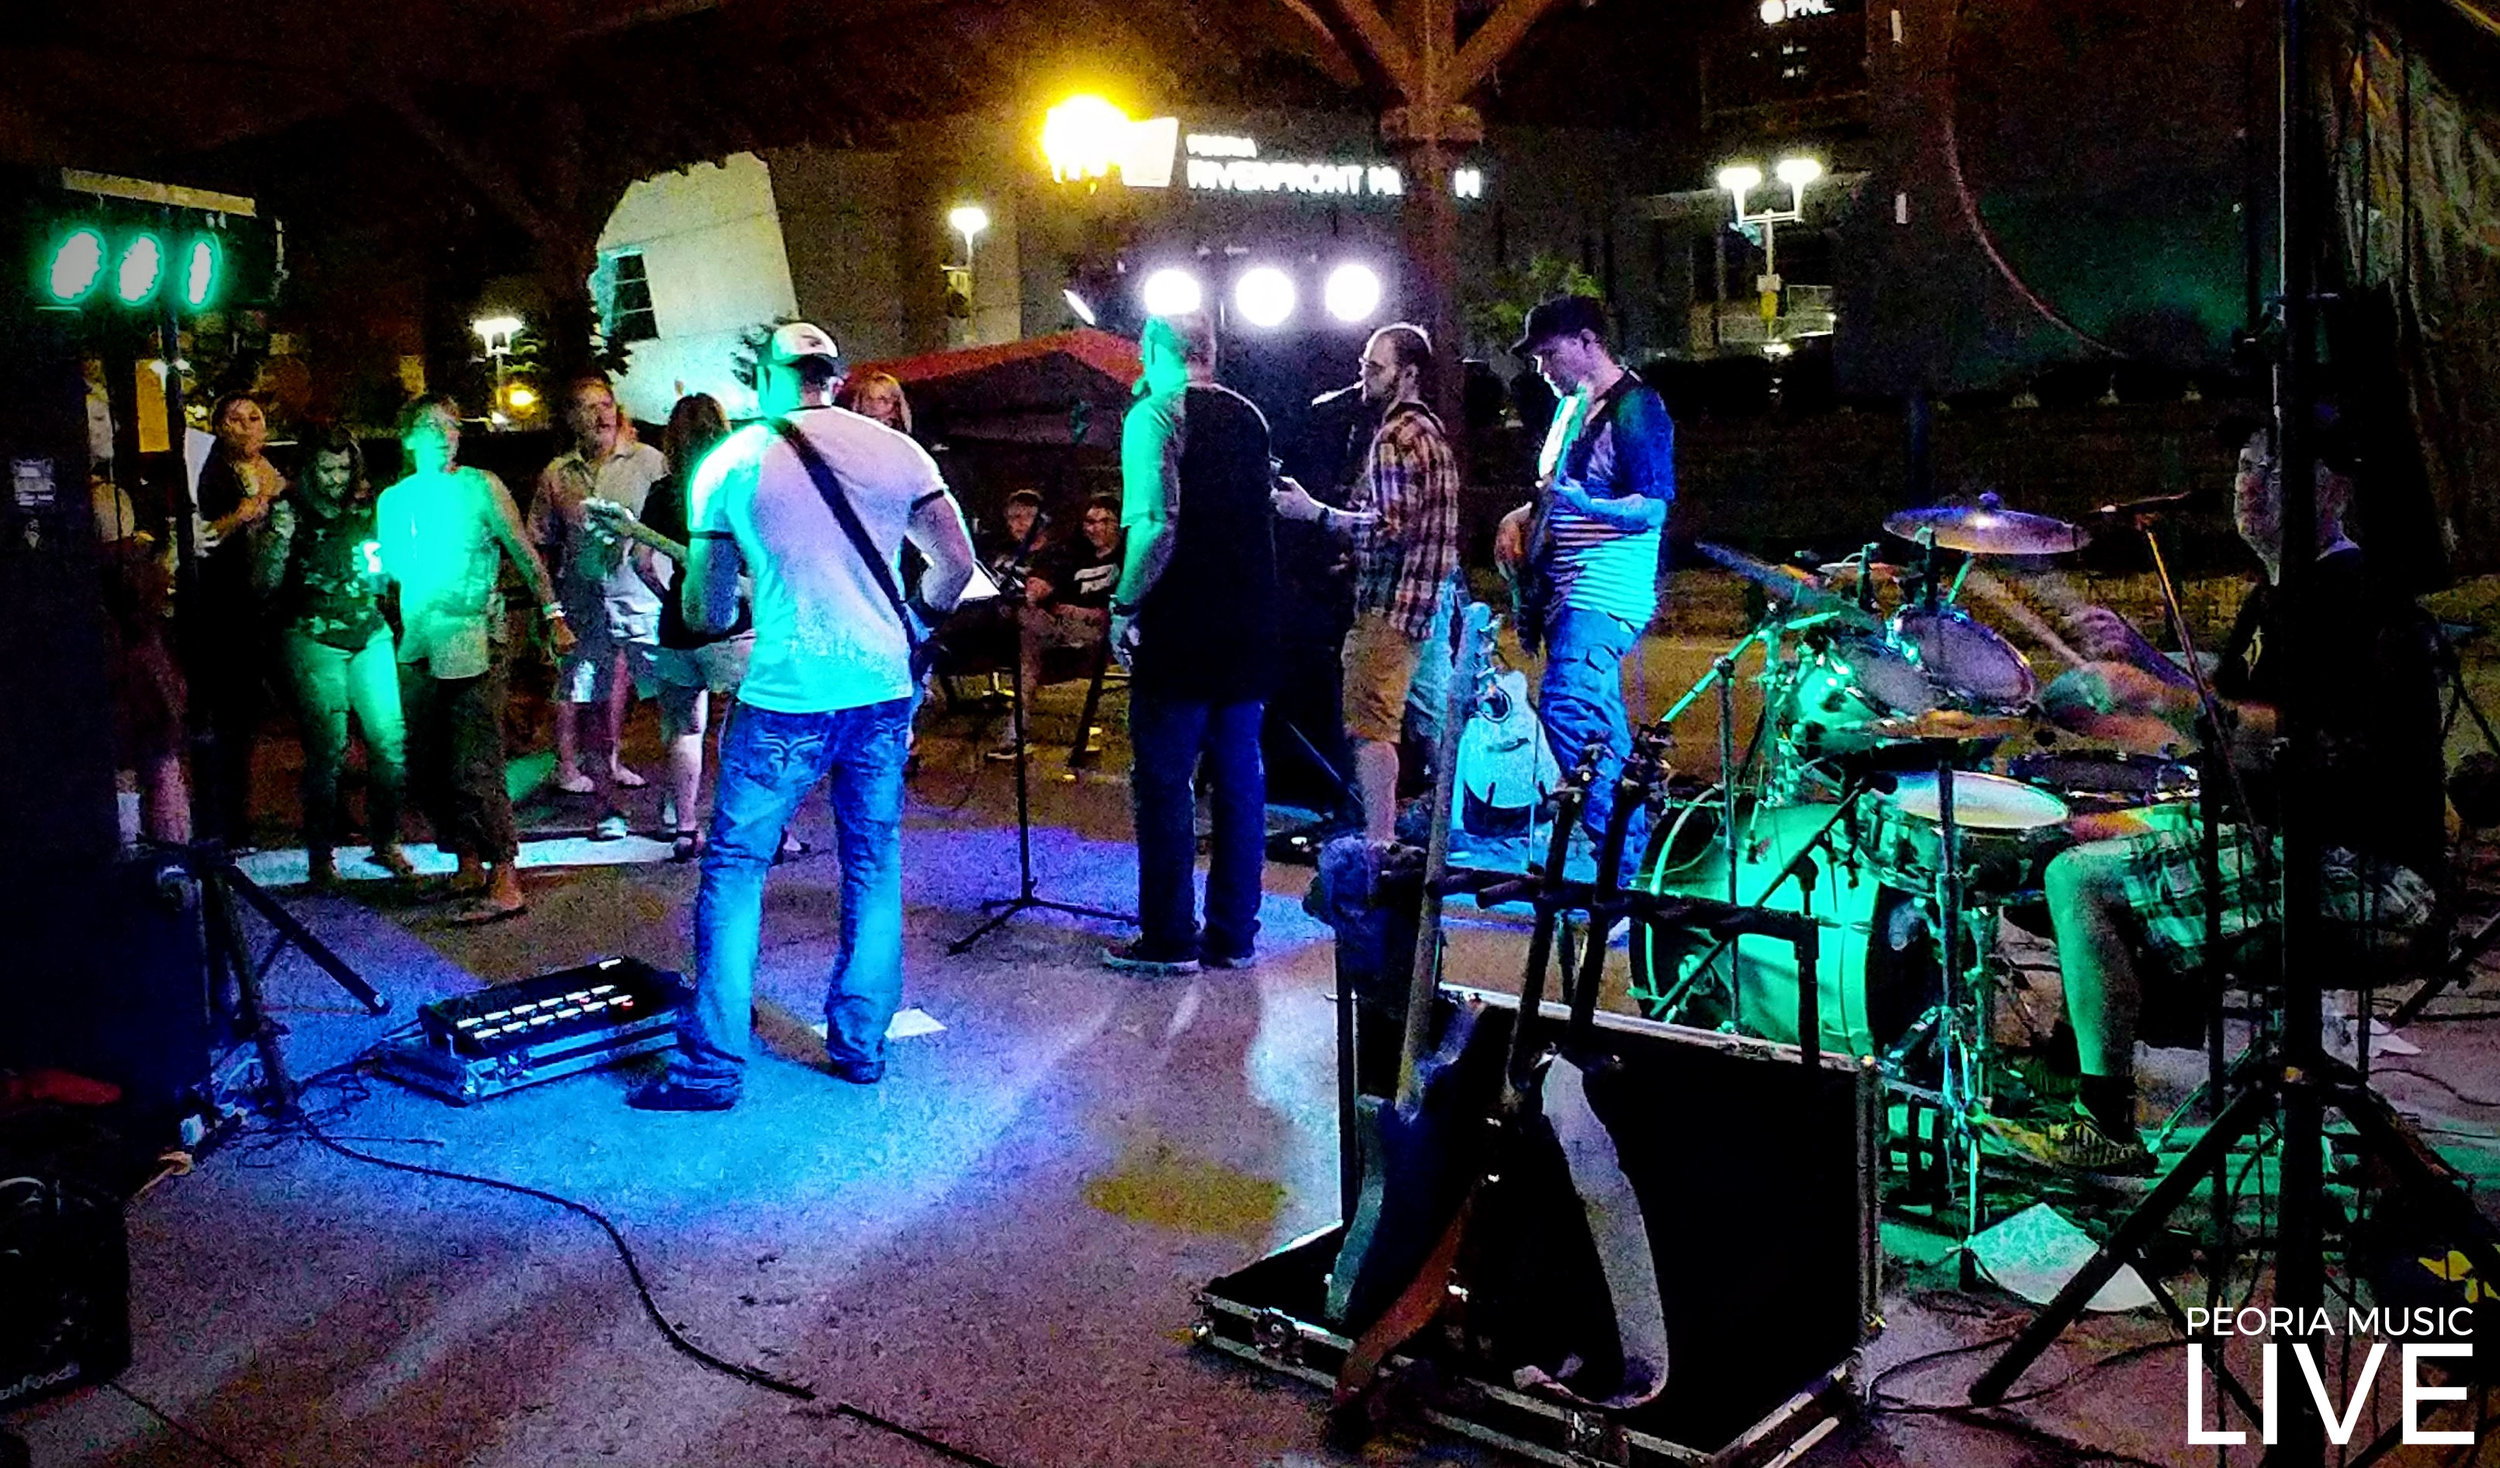 Trailer Parke had the dance floor full at Martini's!  Aug 25, 2018  These guys have been very supportive of Peoria Music Live since the beginning.